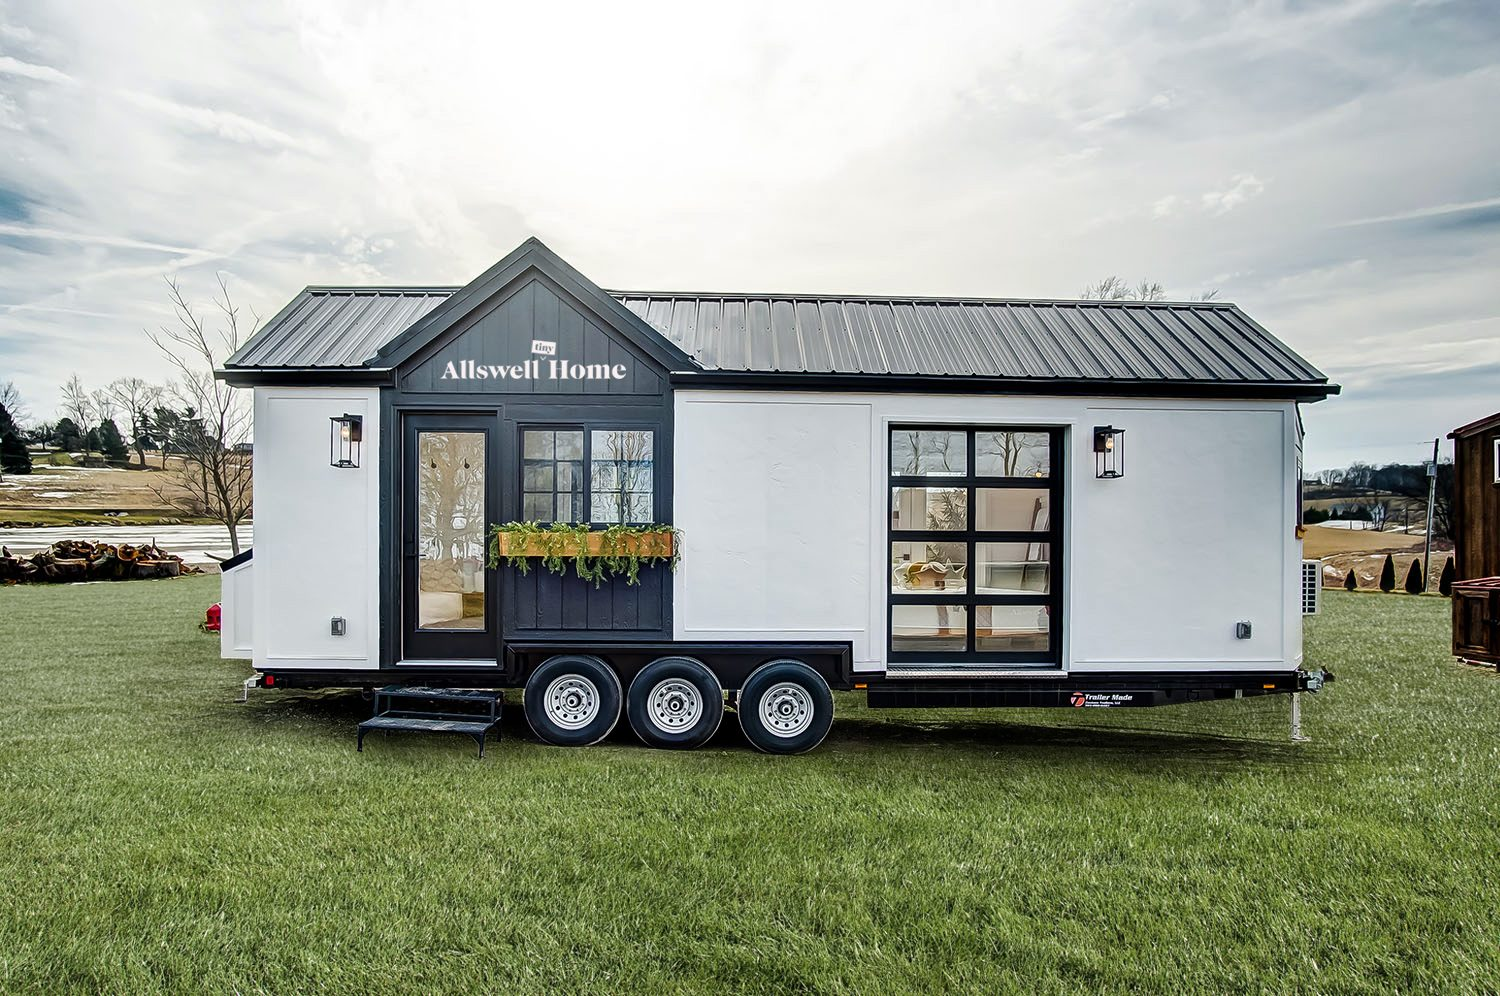 A New Tiny Home Concept Is An Incredibly Cute Option For On The Go